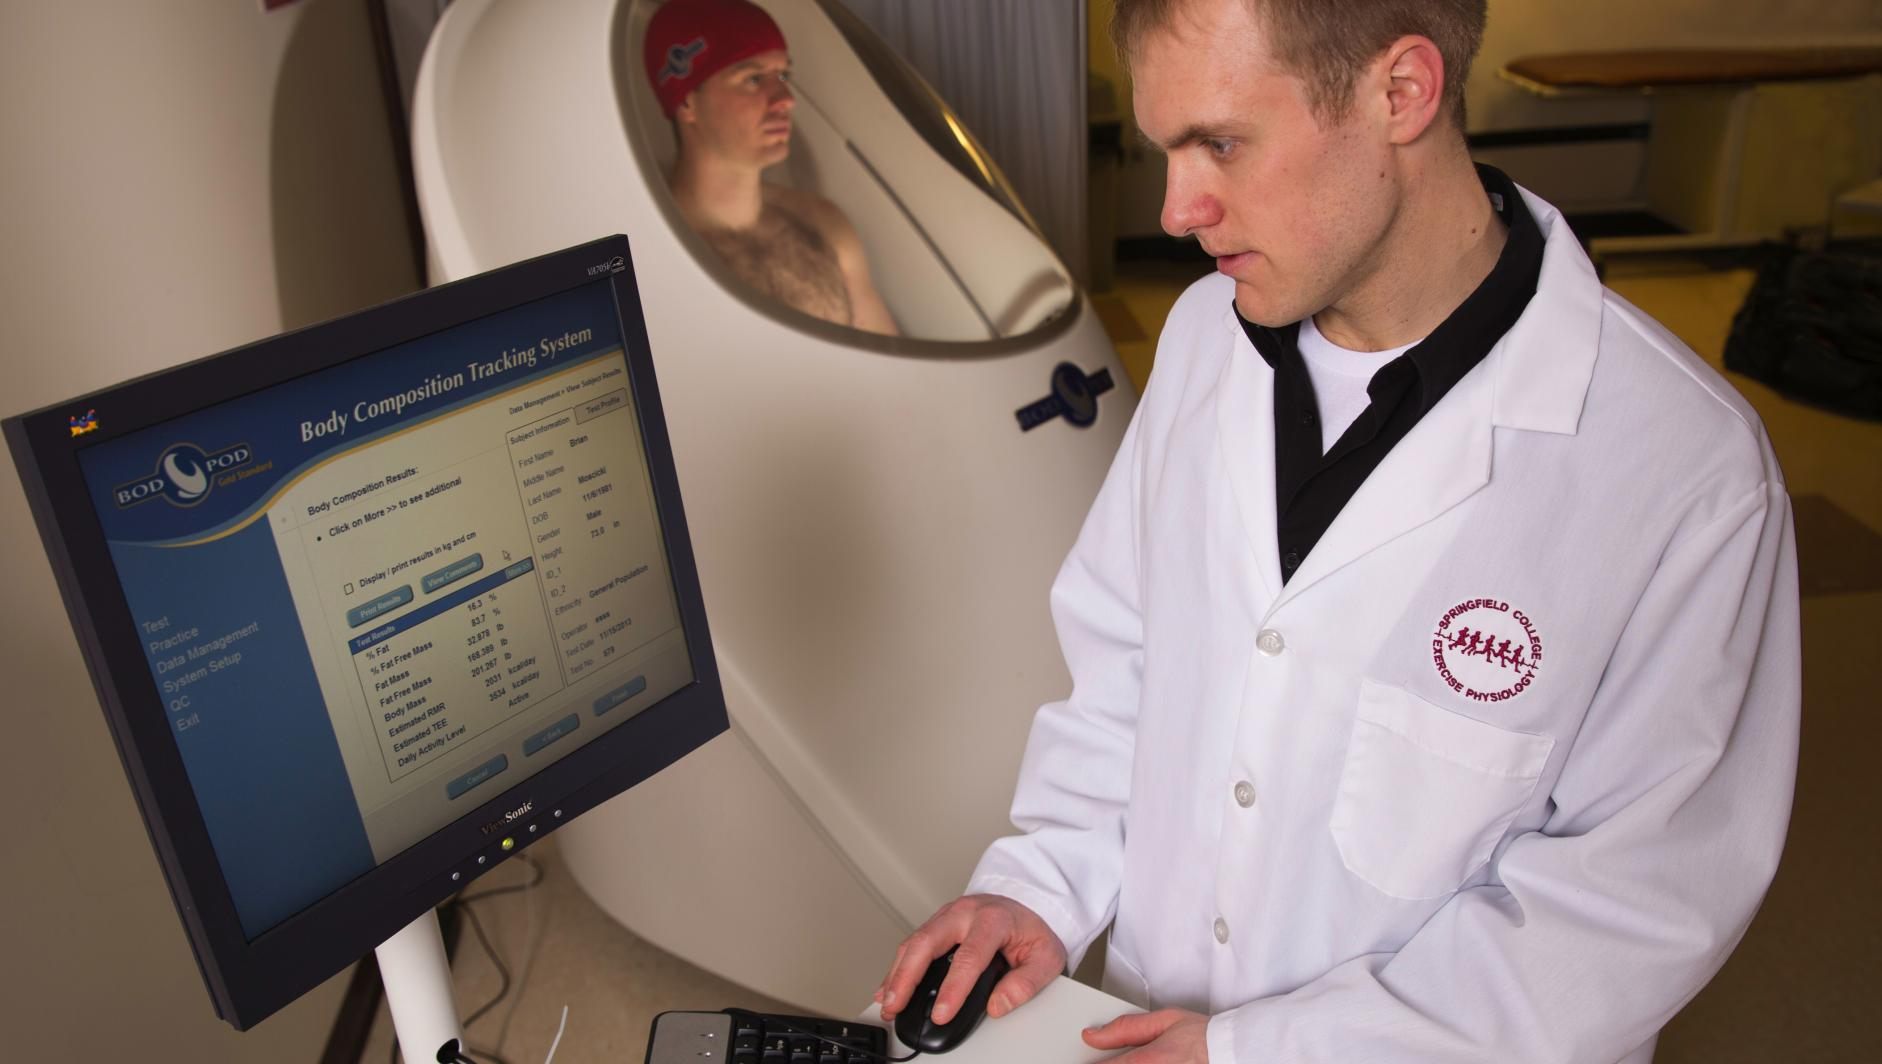 A student conducts testing on another student who is inside a BodPod in the human performance lab.